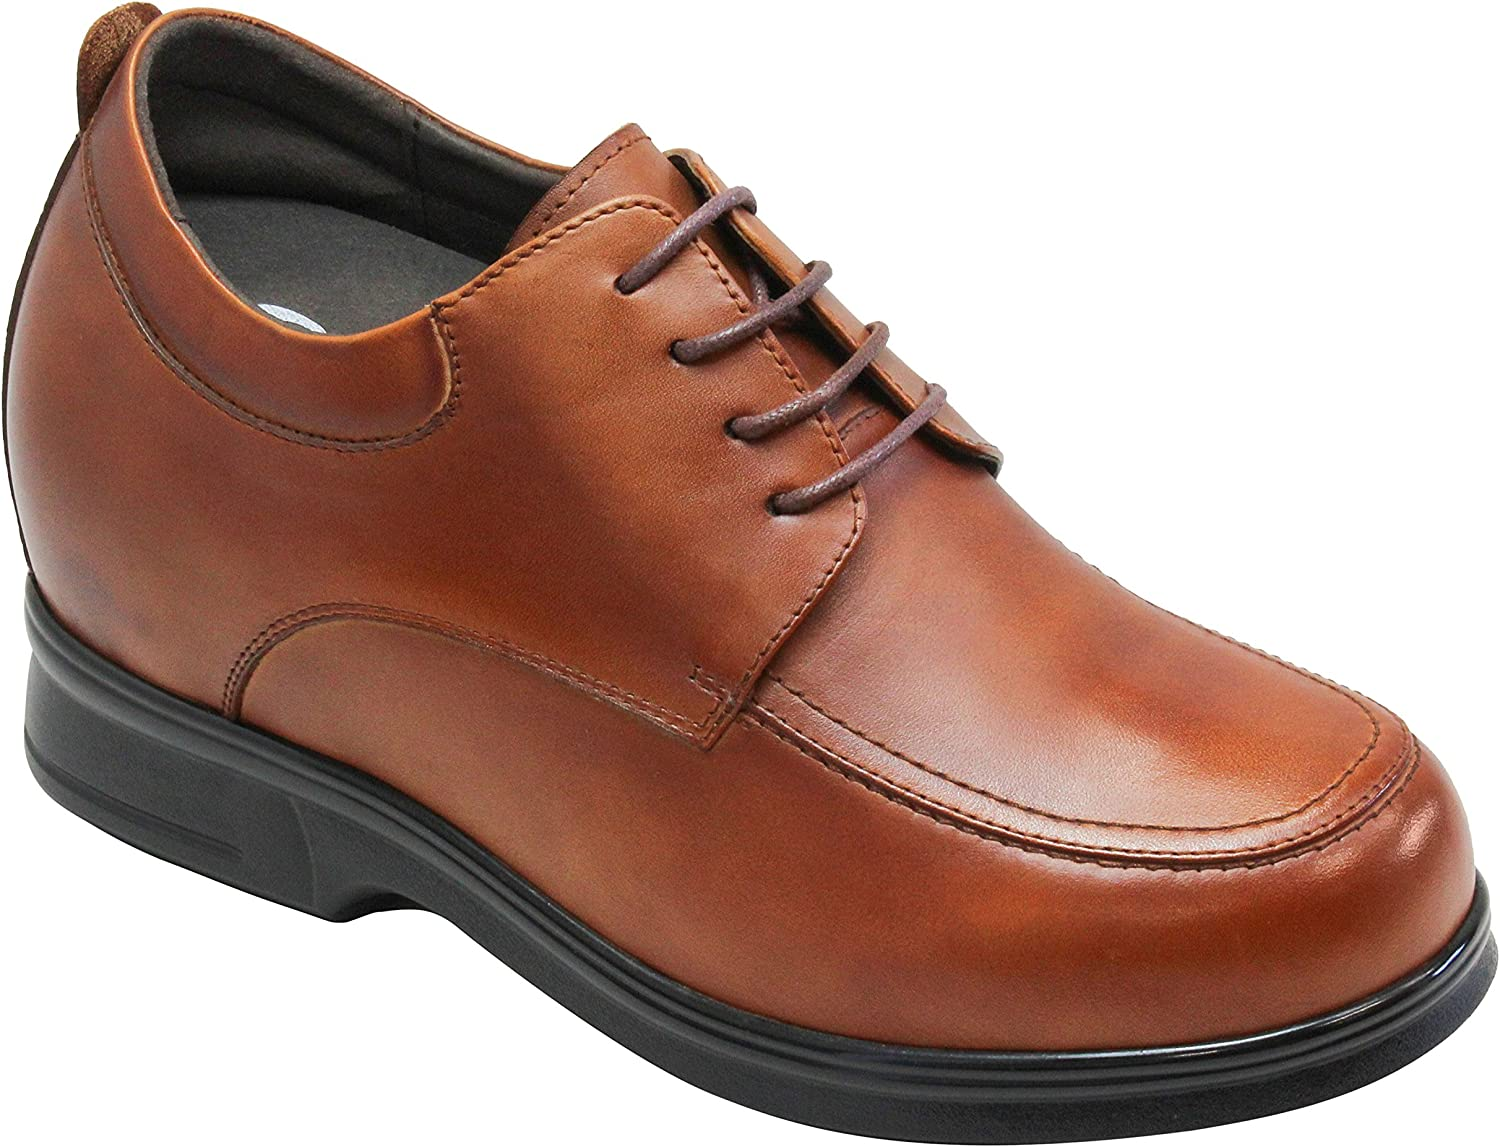 CALTO Men's Invisible Height Increasing Elevator shoes - Brown Premium Leather Lace-up Casual Oxfords - 4.4 Inches Taller - T52631